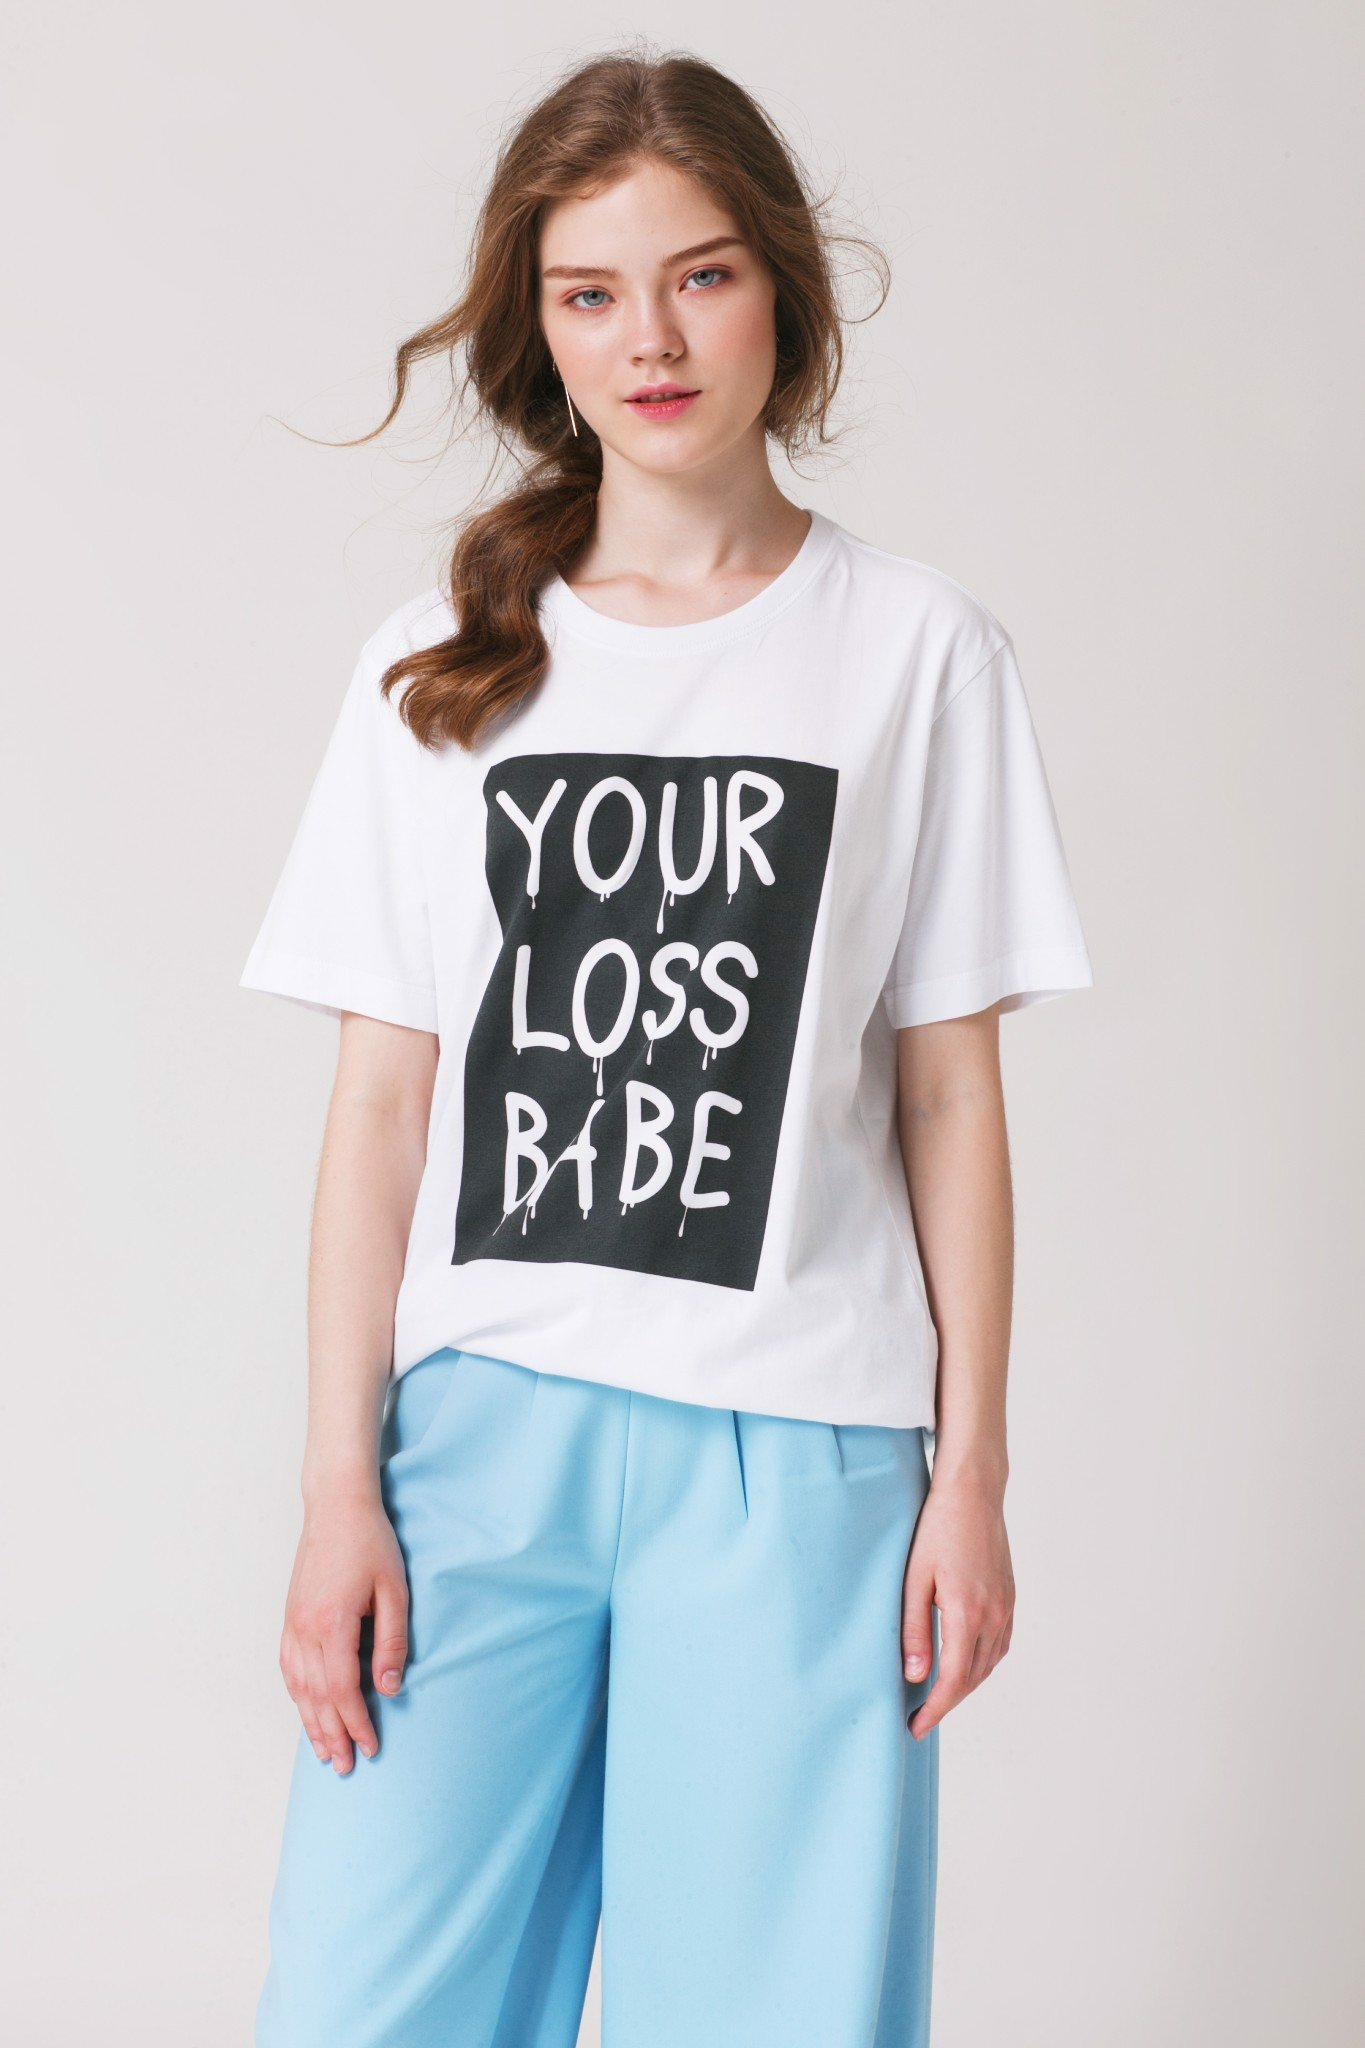 Your Loss Babe Printed T-shirt